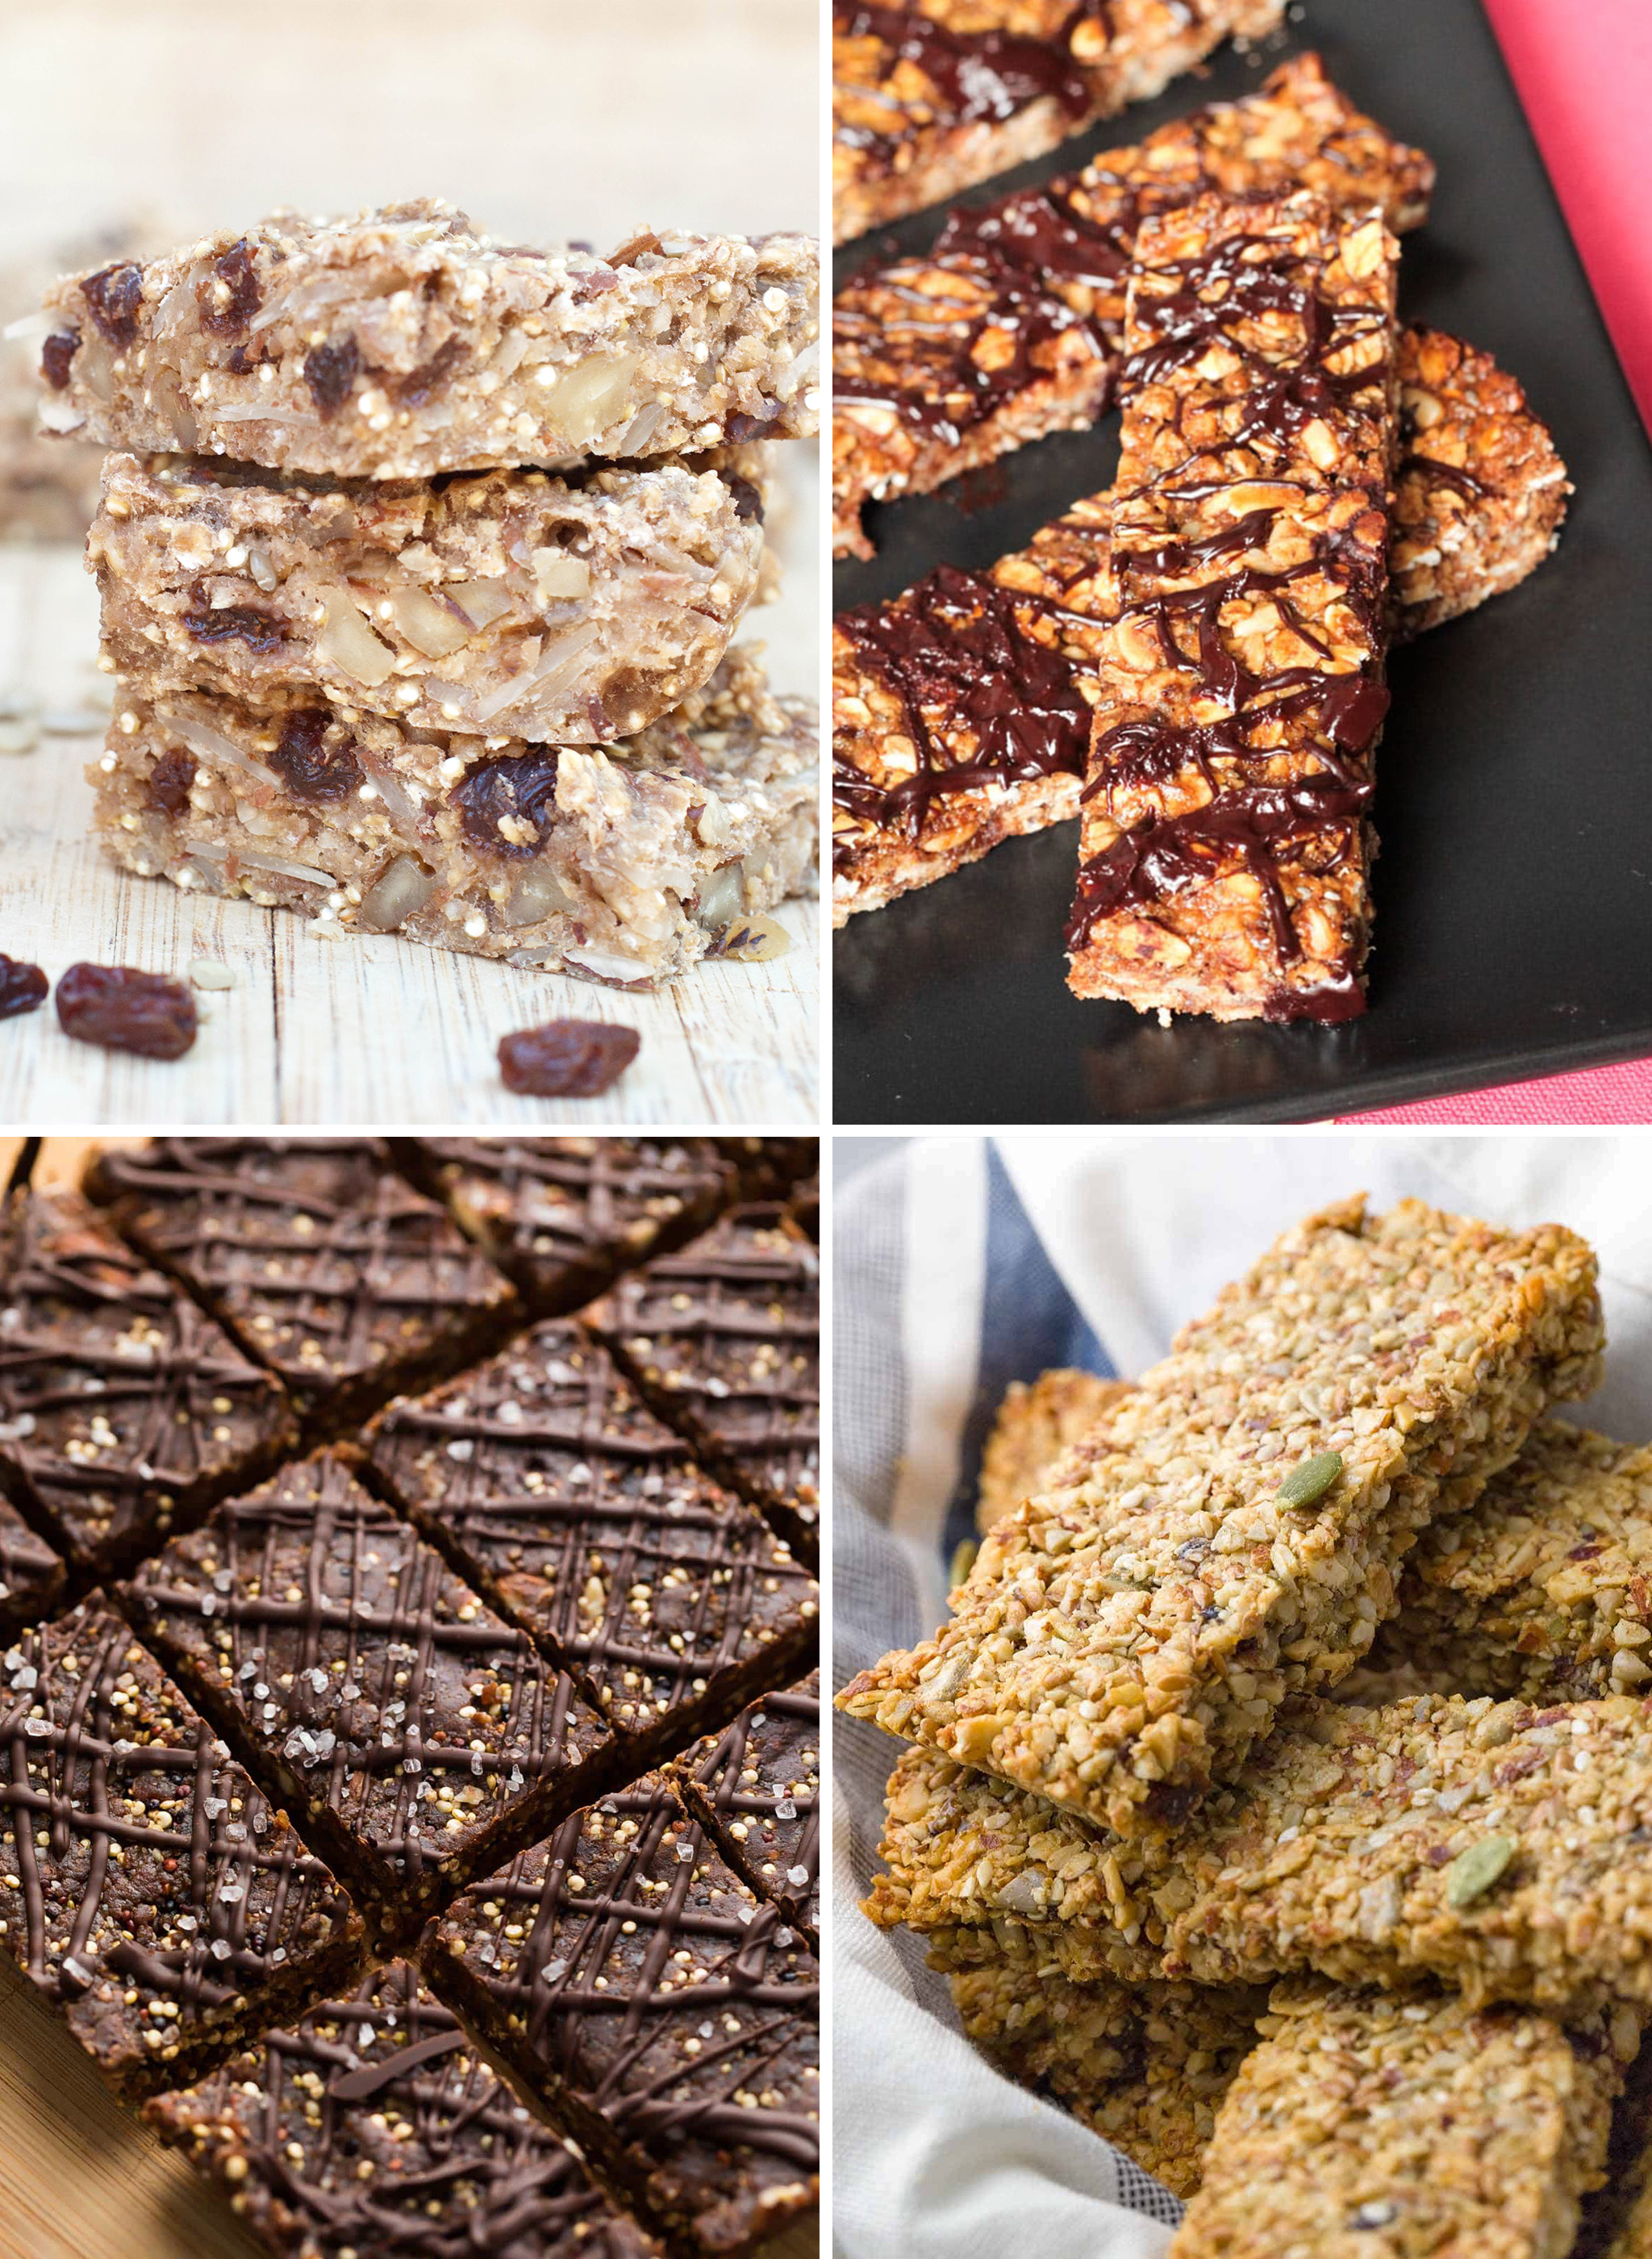 4 kinds of baked healthy snack bars you can meal prep